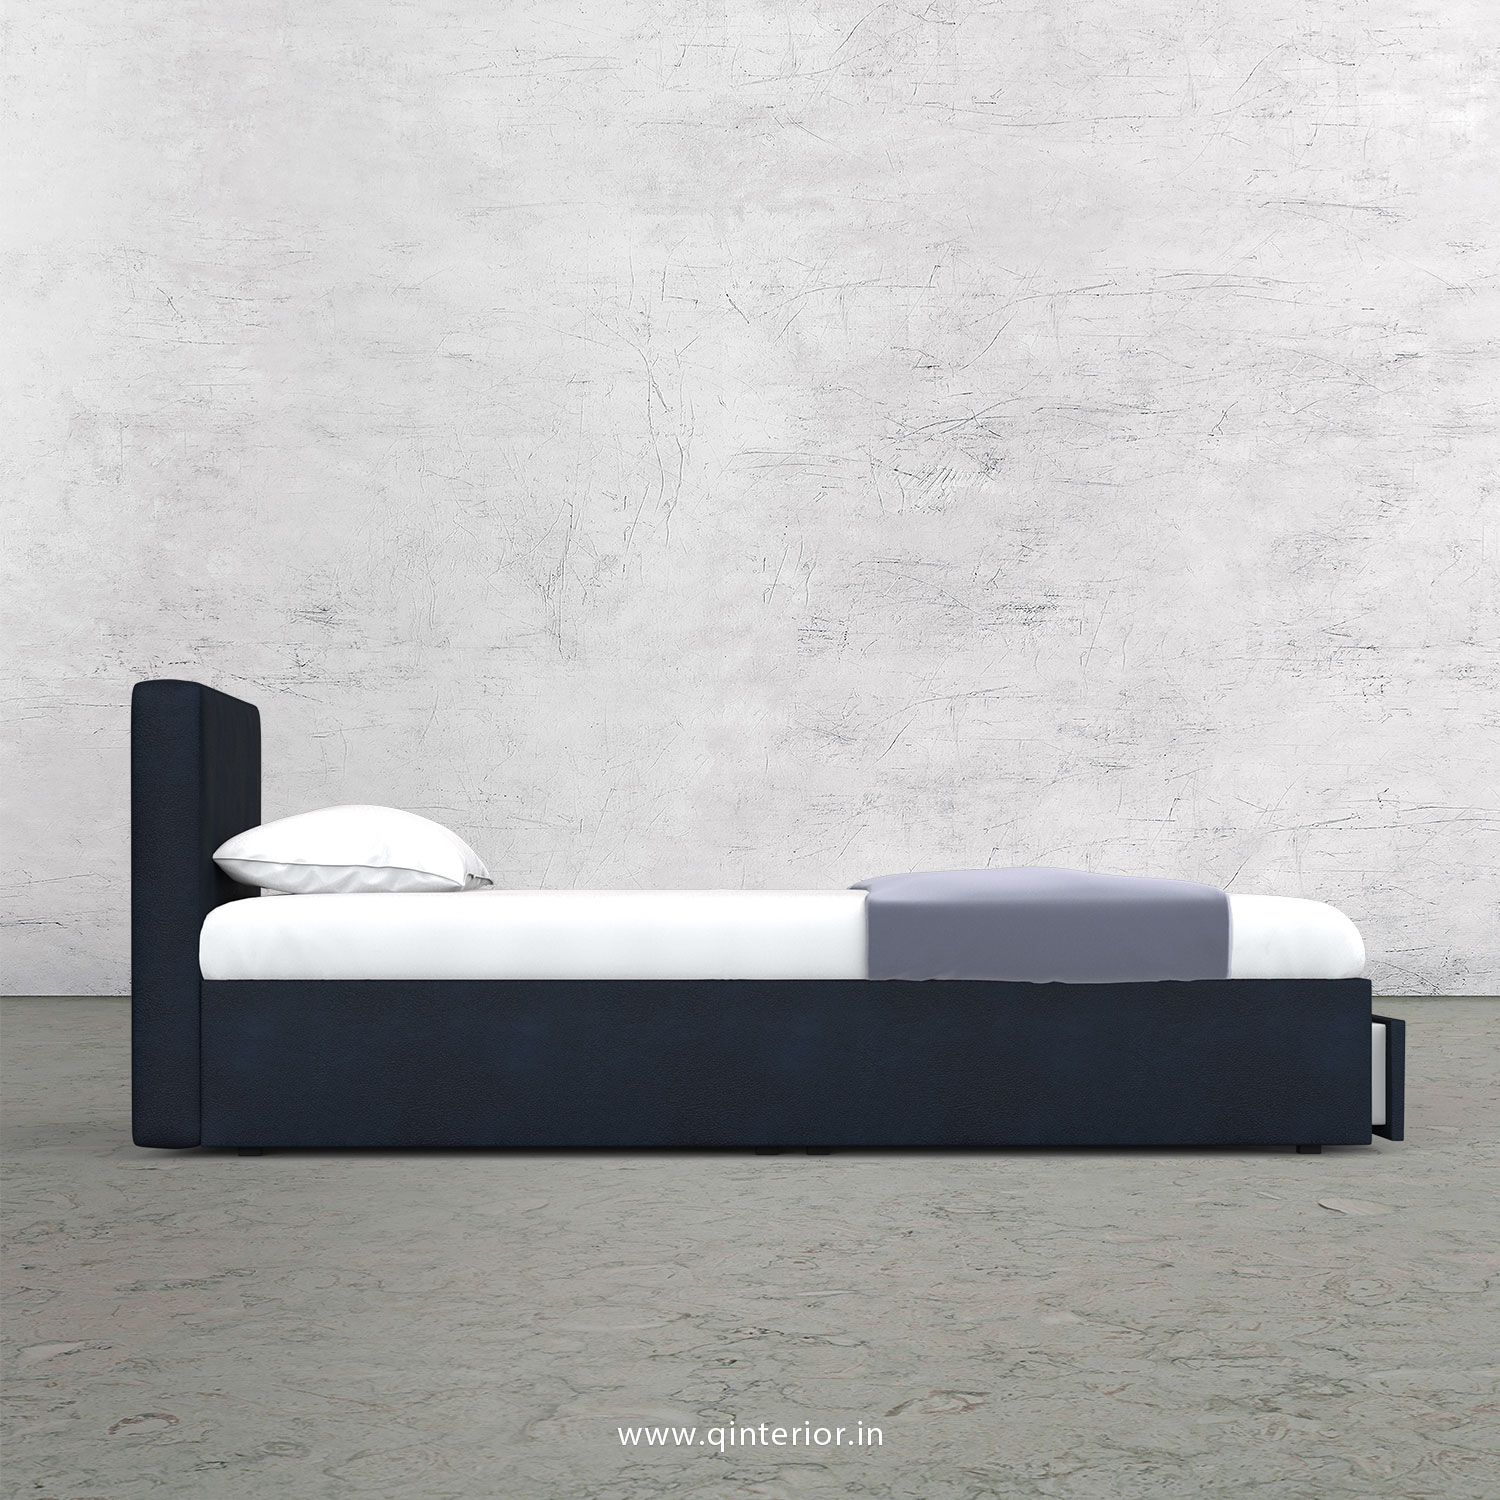 Nirvana Queen Storage Bed in Fab Leather Fabric - QBD001 FL05